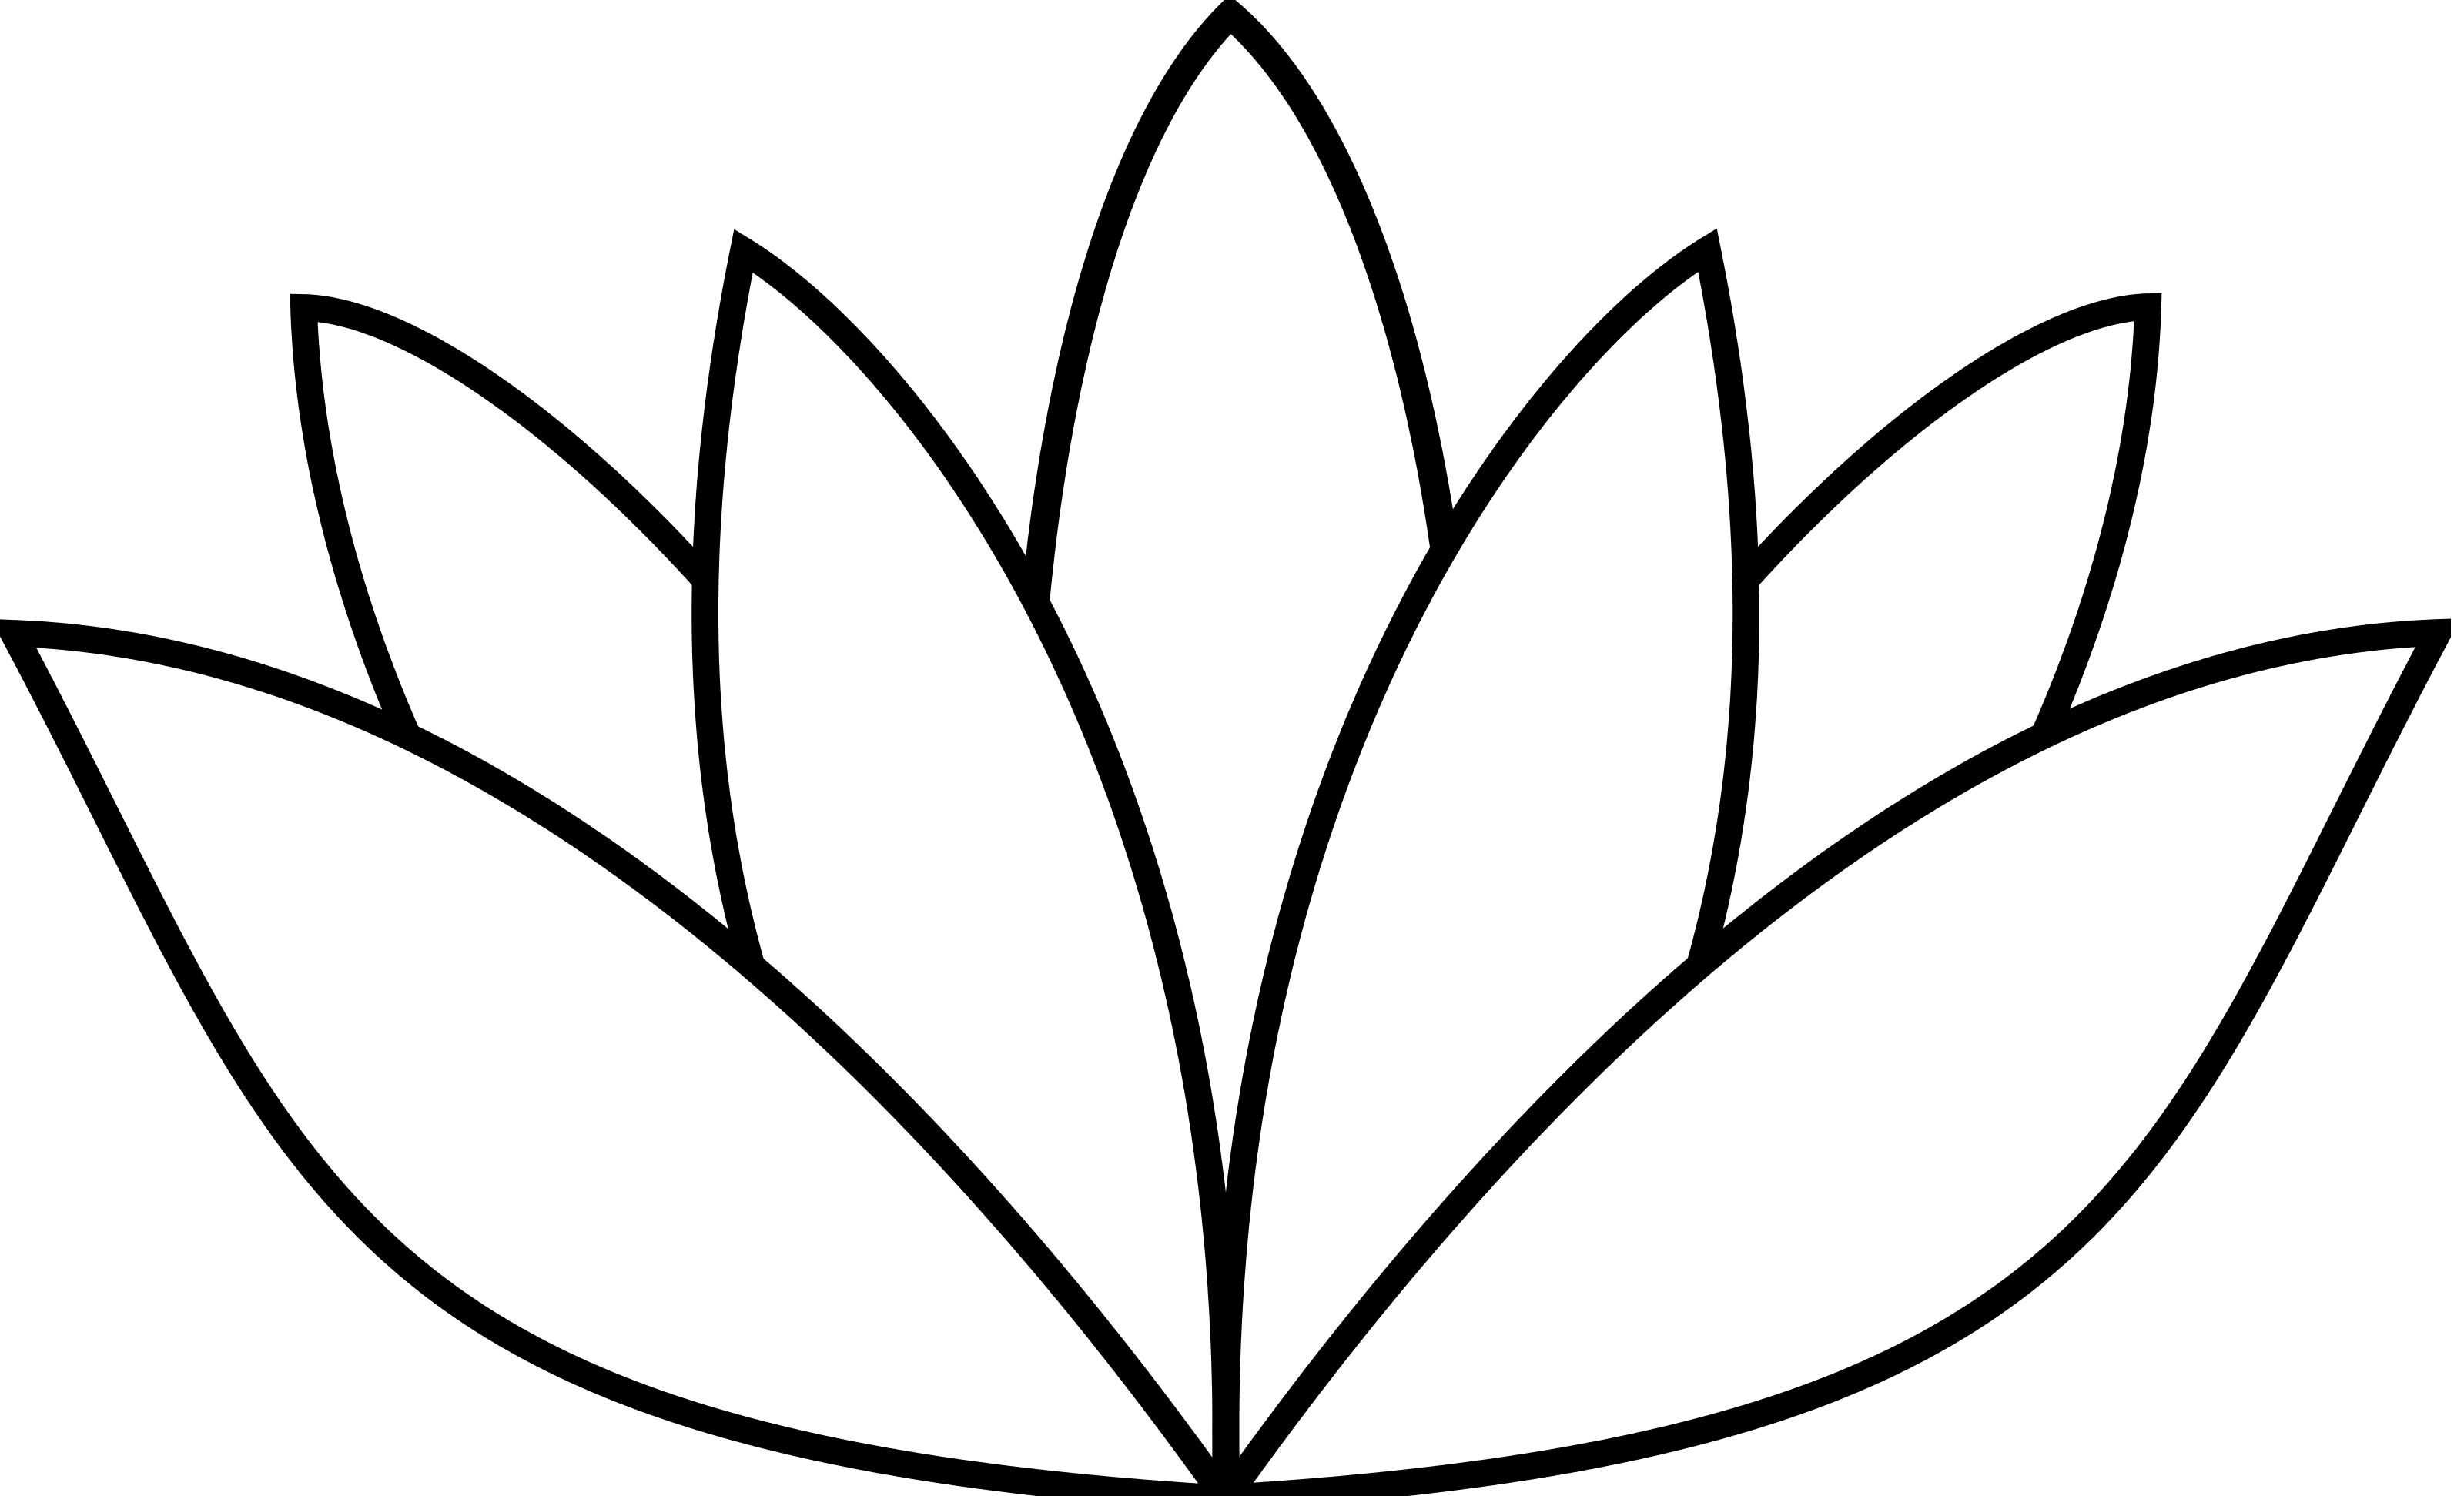 Clip Art Lotus Flower - Cliparts.co